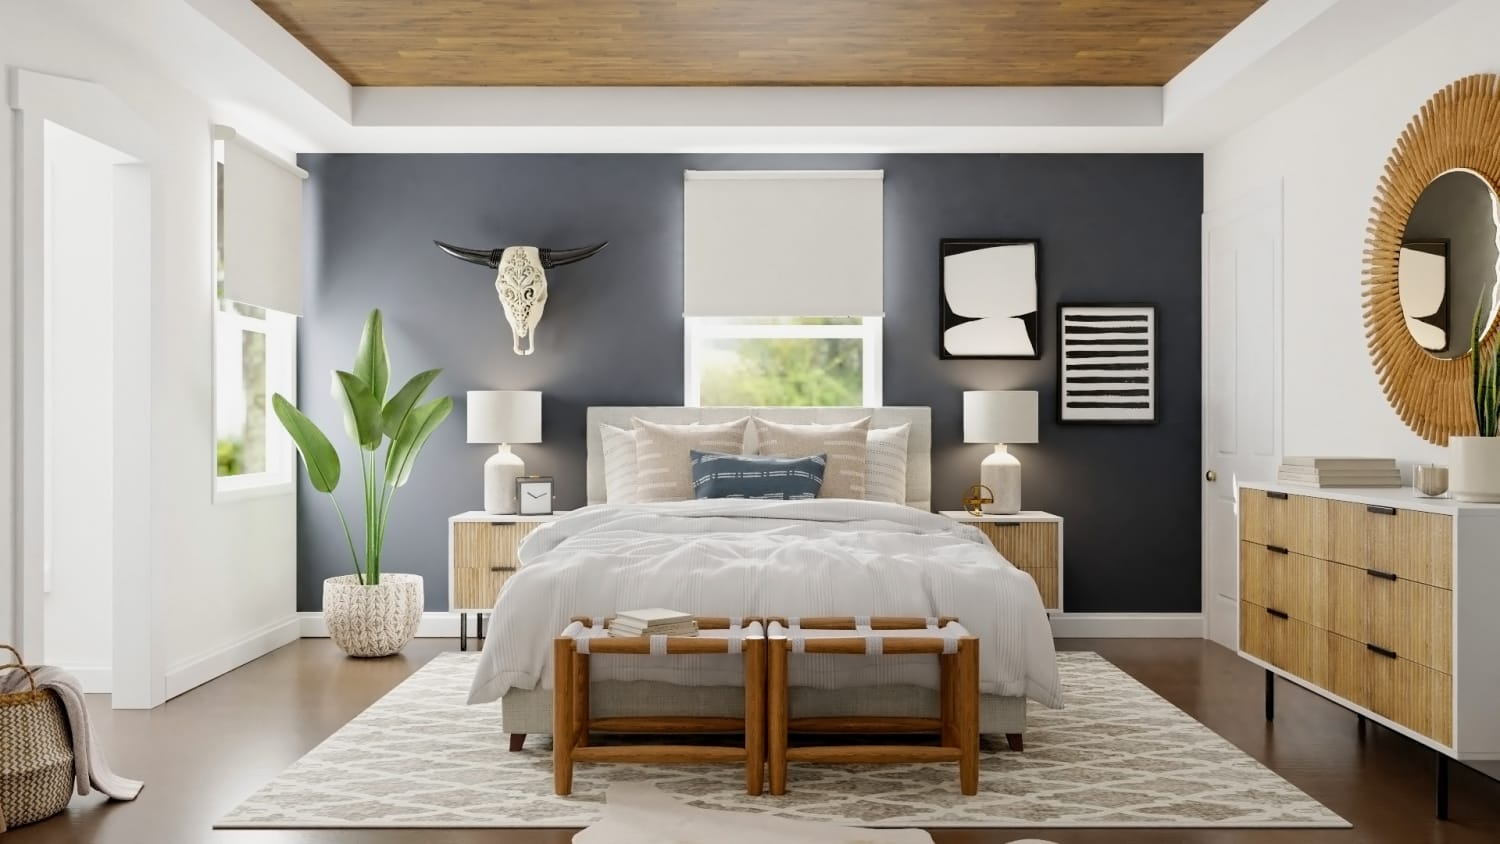 Mid Century Boho Bedroom Design With Warm Woods By Spacejoy